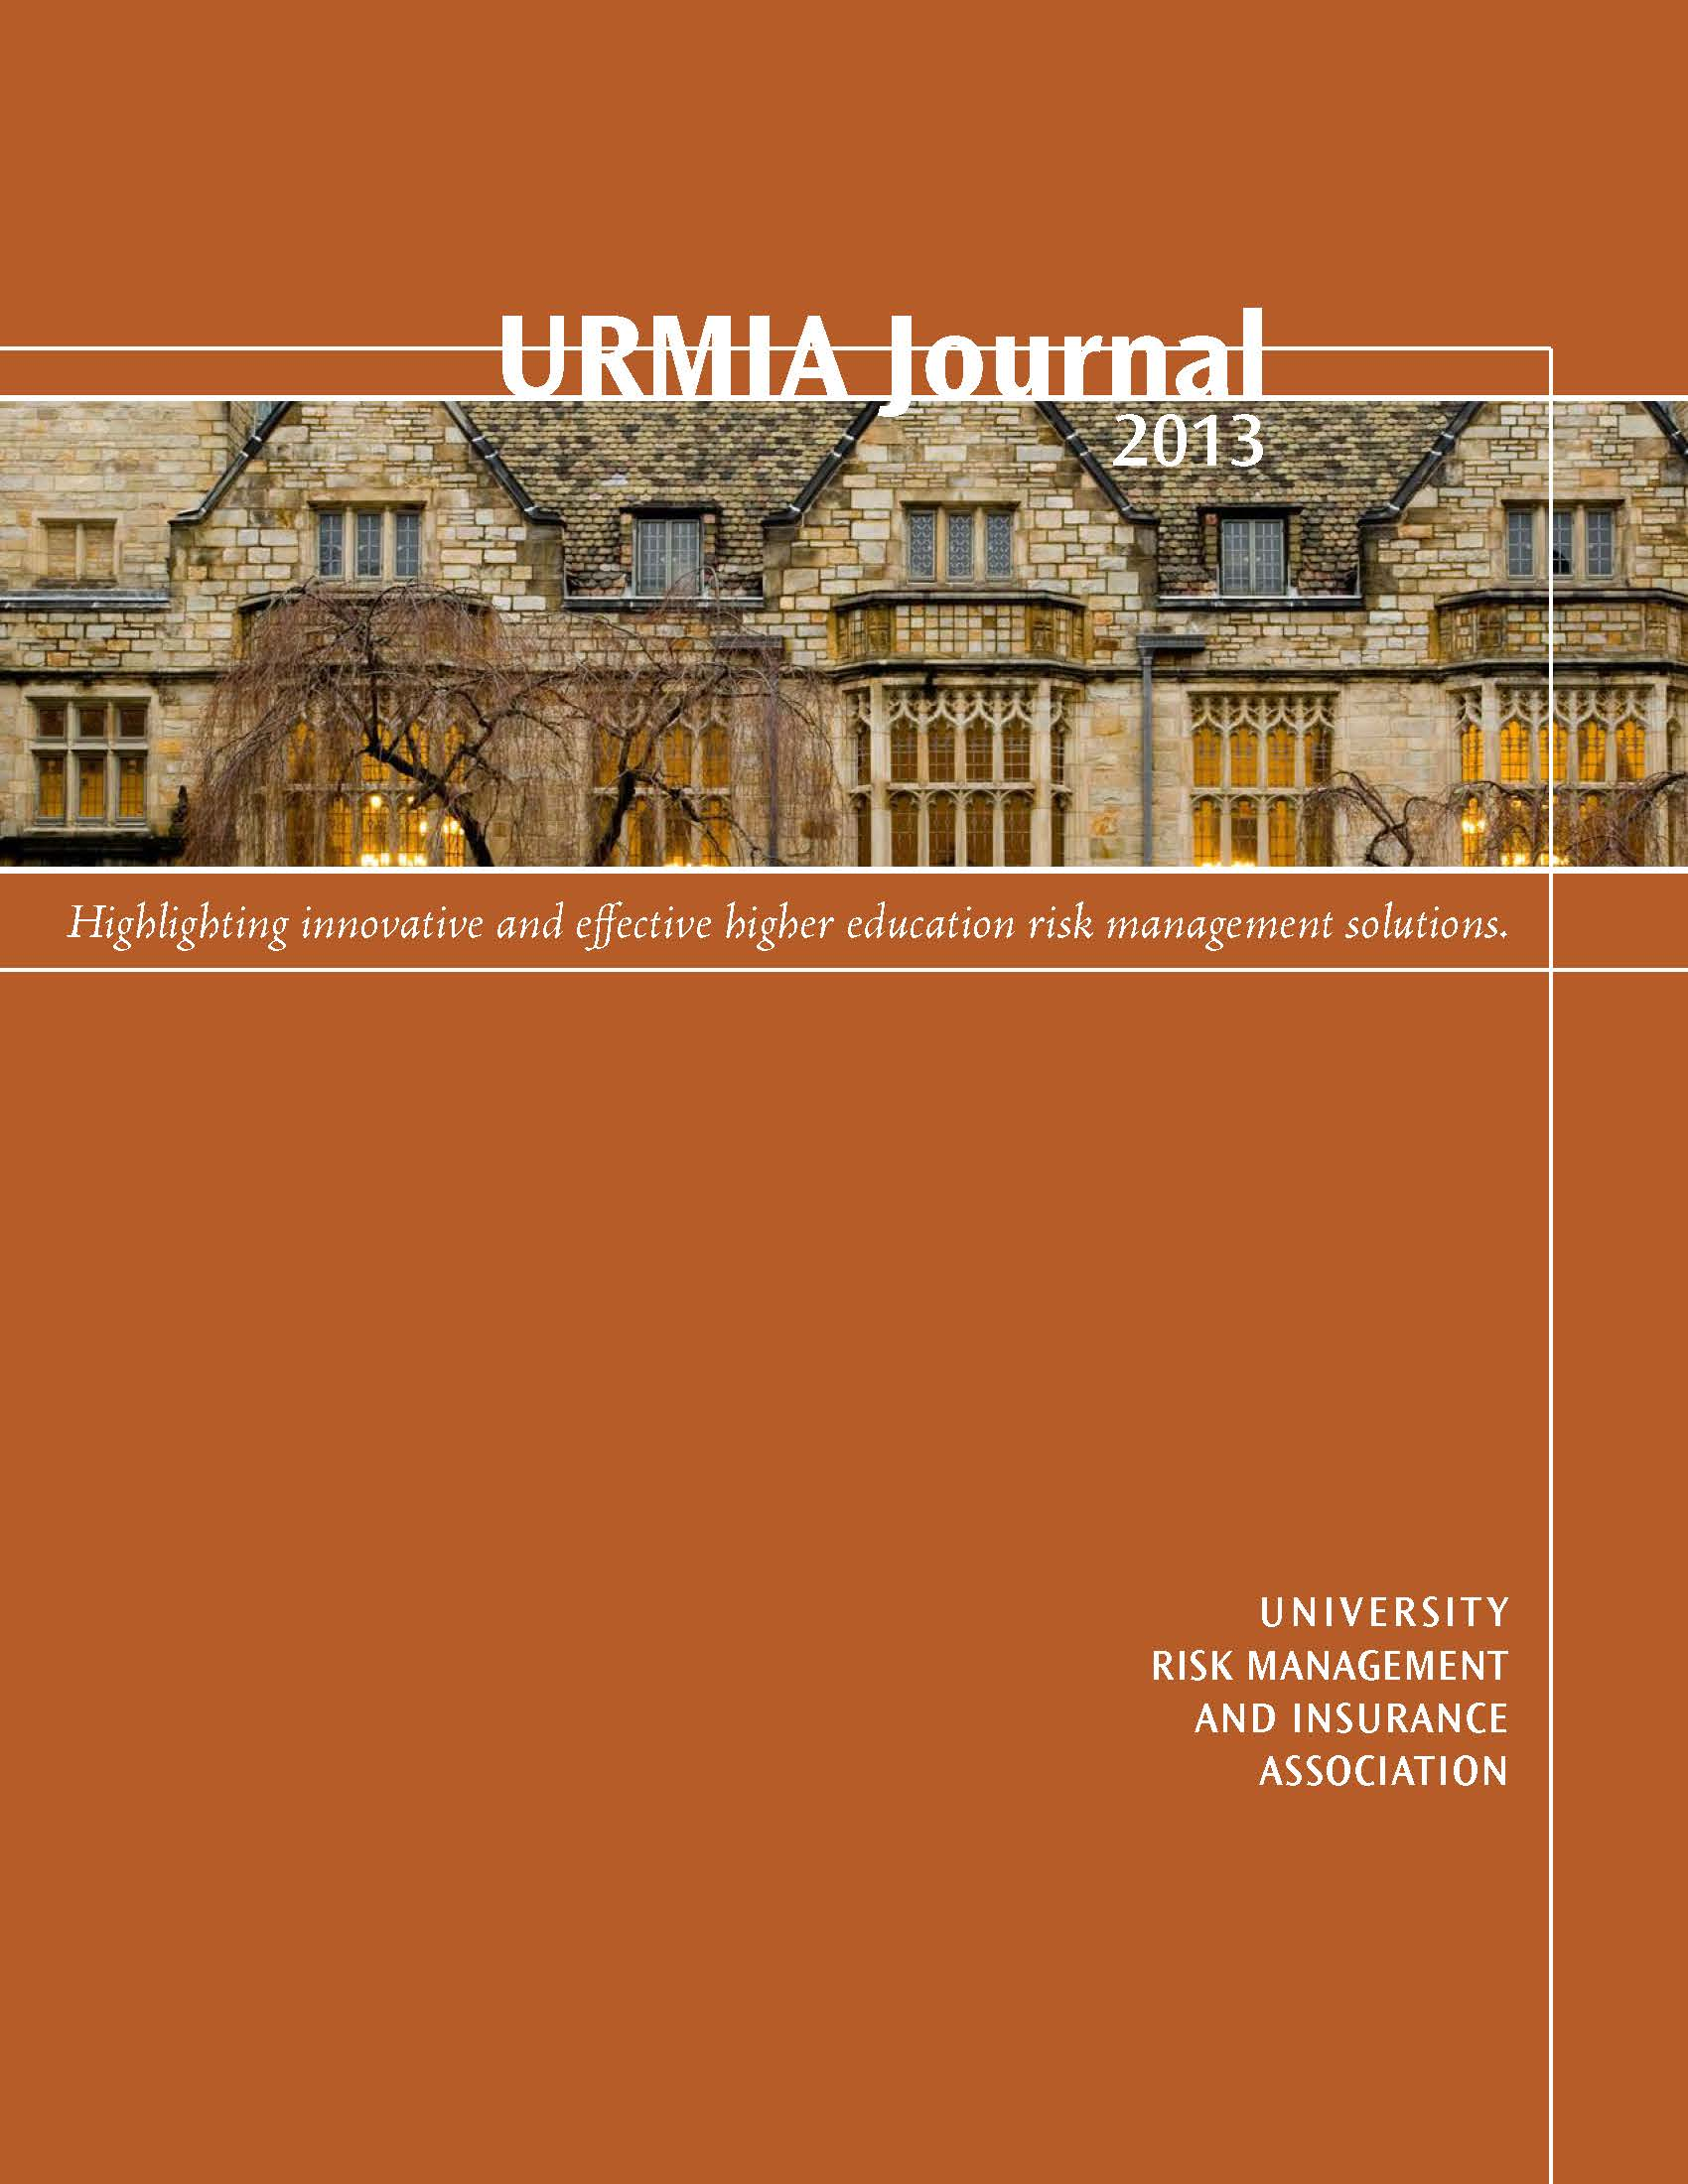 2013 URMIA Journal